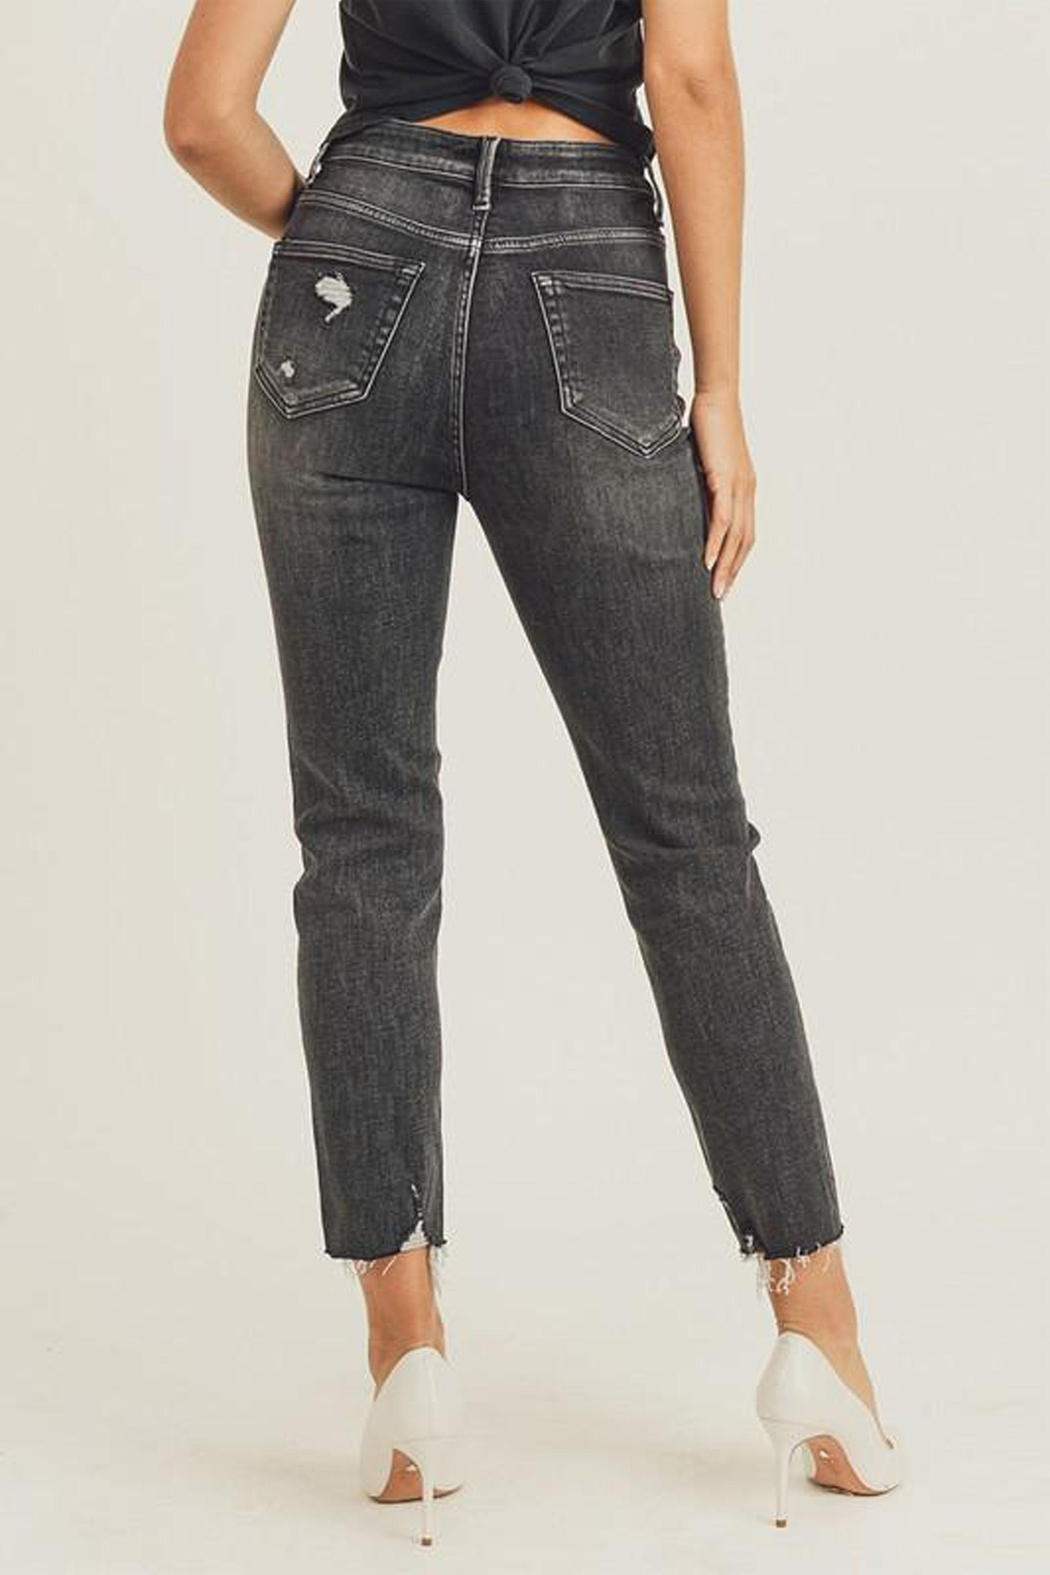 Risen Jeans  Black-Vintage-Wash Distressed Denim - Back Cropped Image